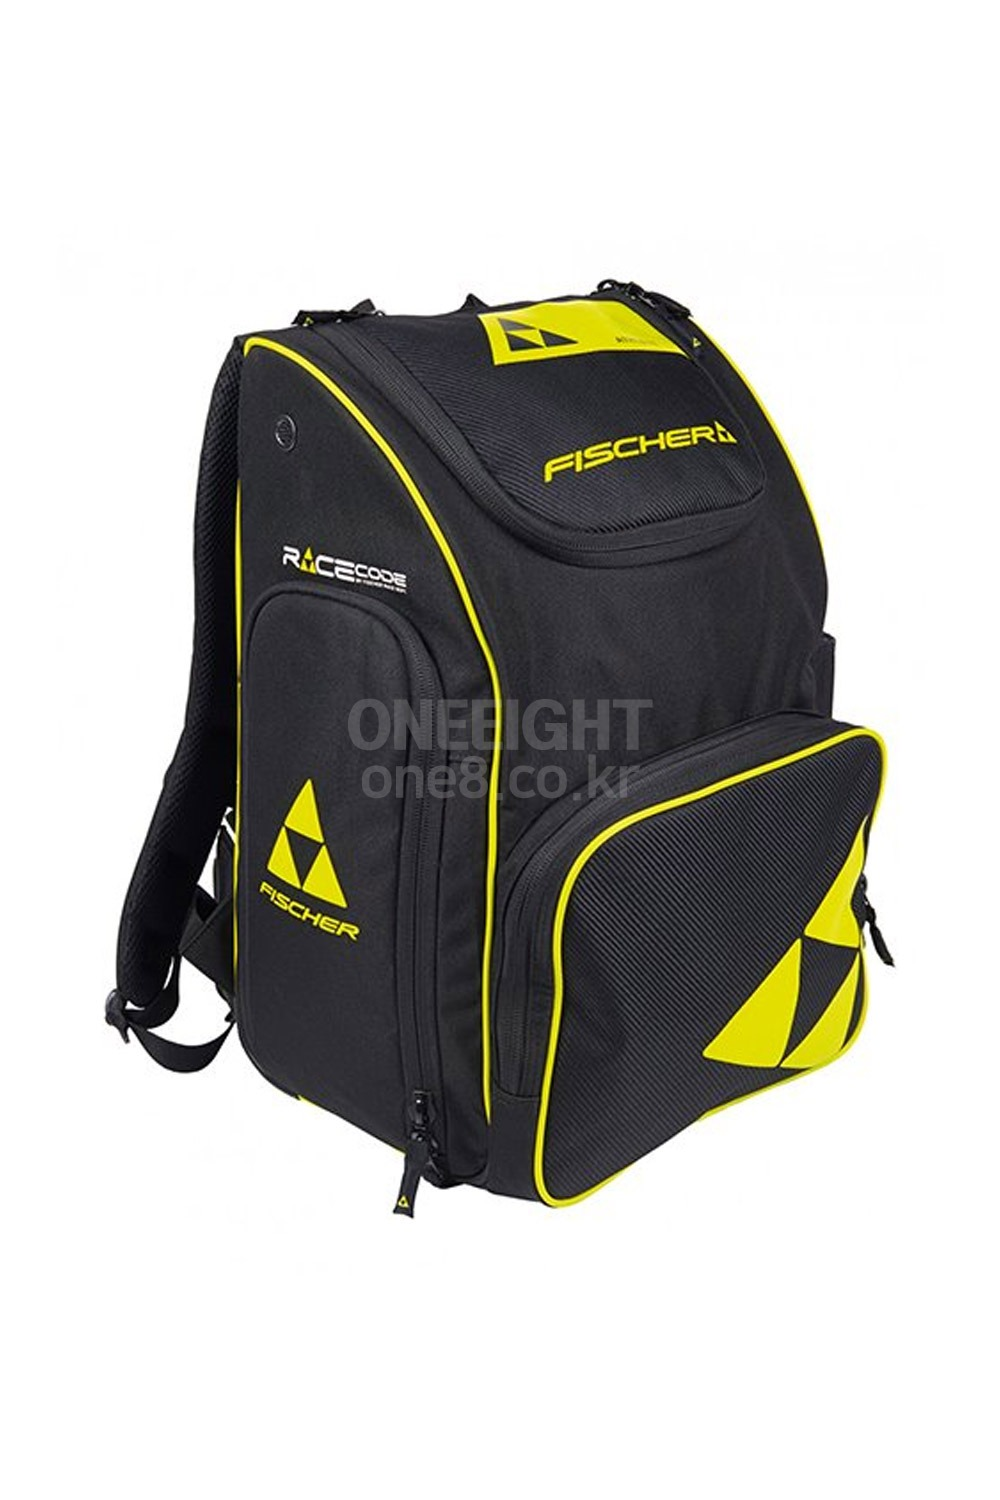 피셔 다용도 백팩 레이스 70L  1819 FISCHER BACKPACK RACE 70L_BLACK/YELLOW_FKF4801YK